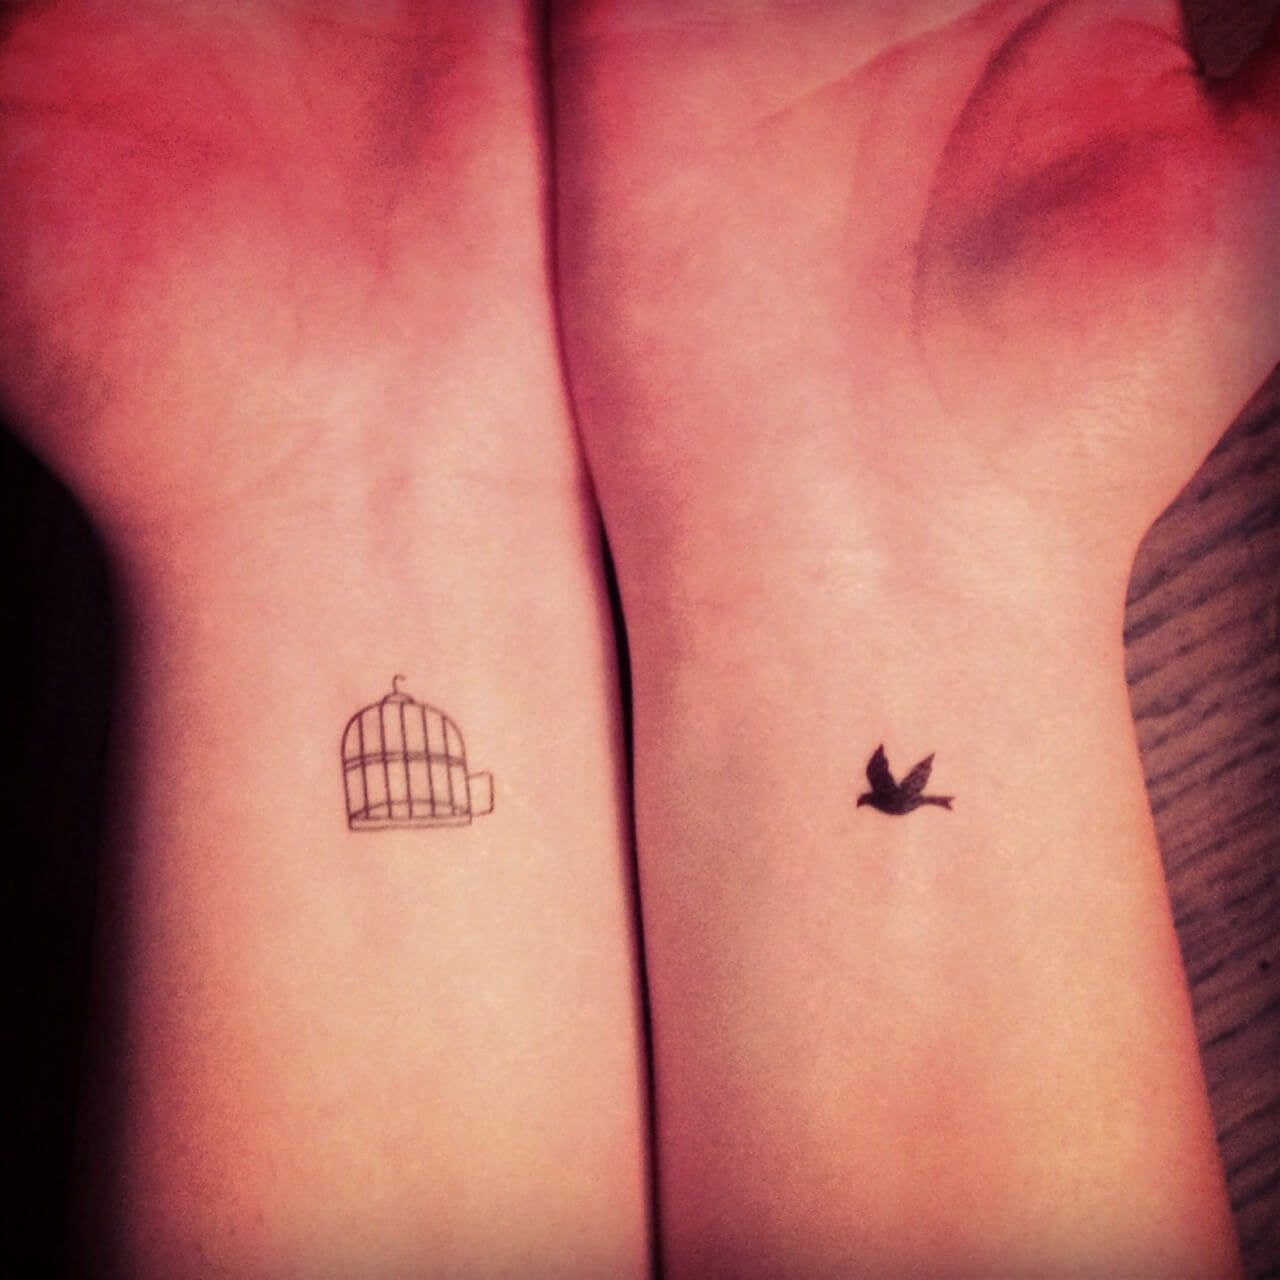 Beautiful Birdcage Tattoo On Wrist Bct1204 Jpg 1 280 1 280 Pixels Cage Tattoos Best Couple Tattoos Couple Tattoos